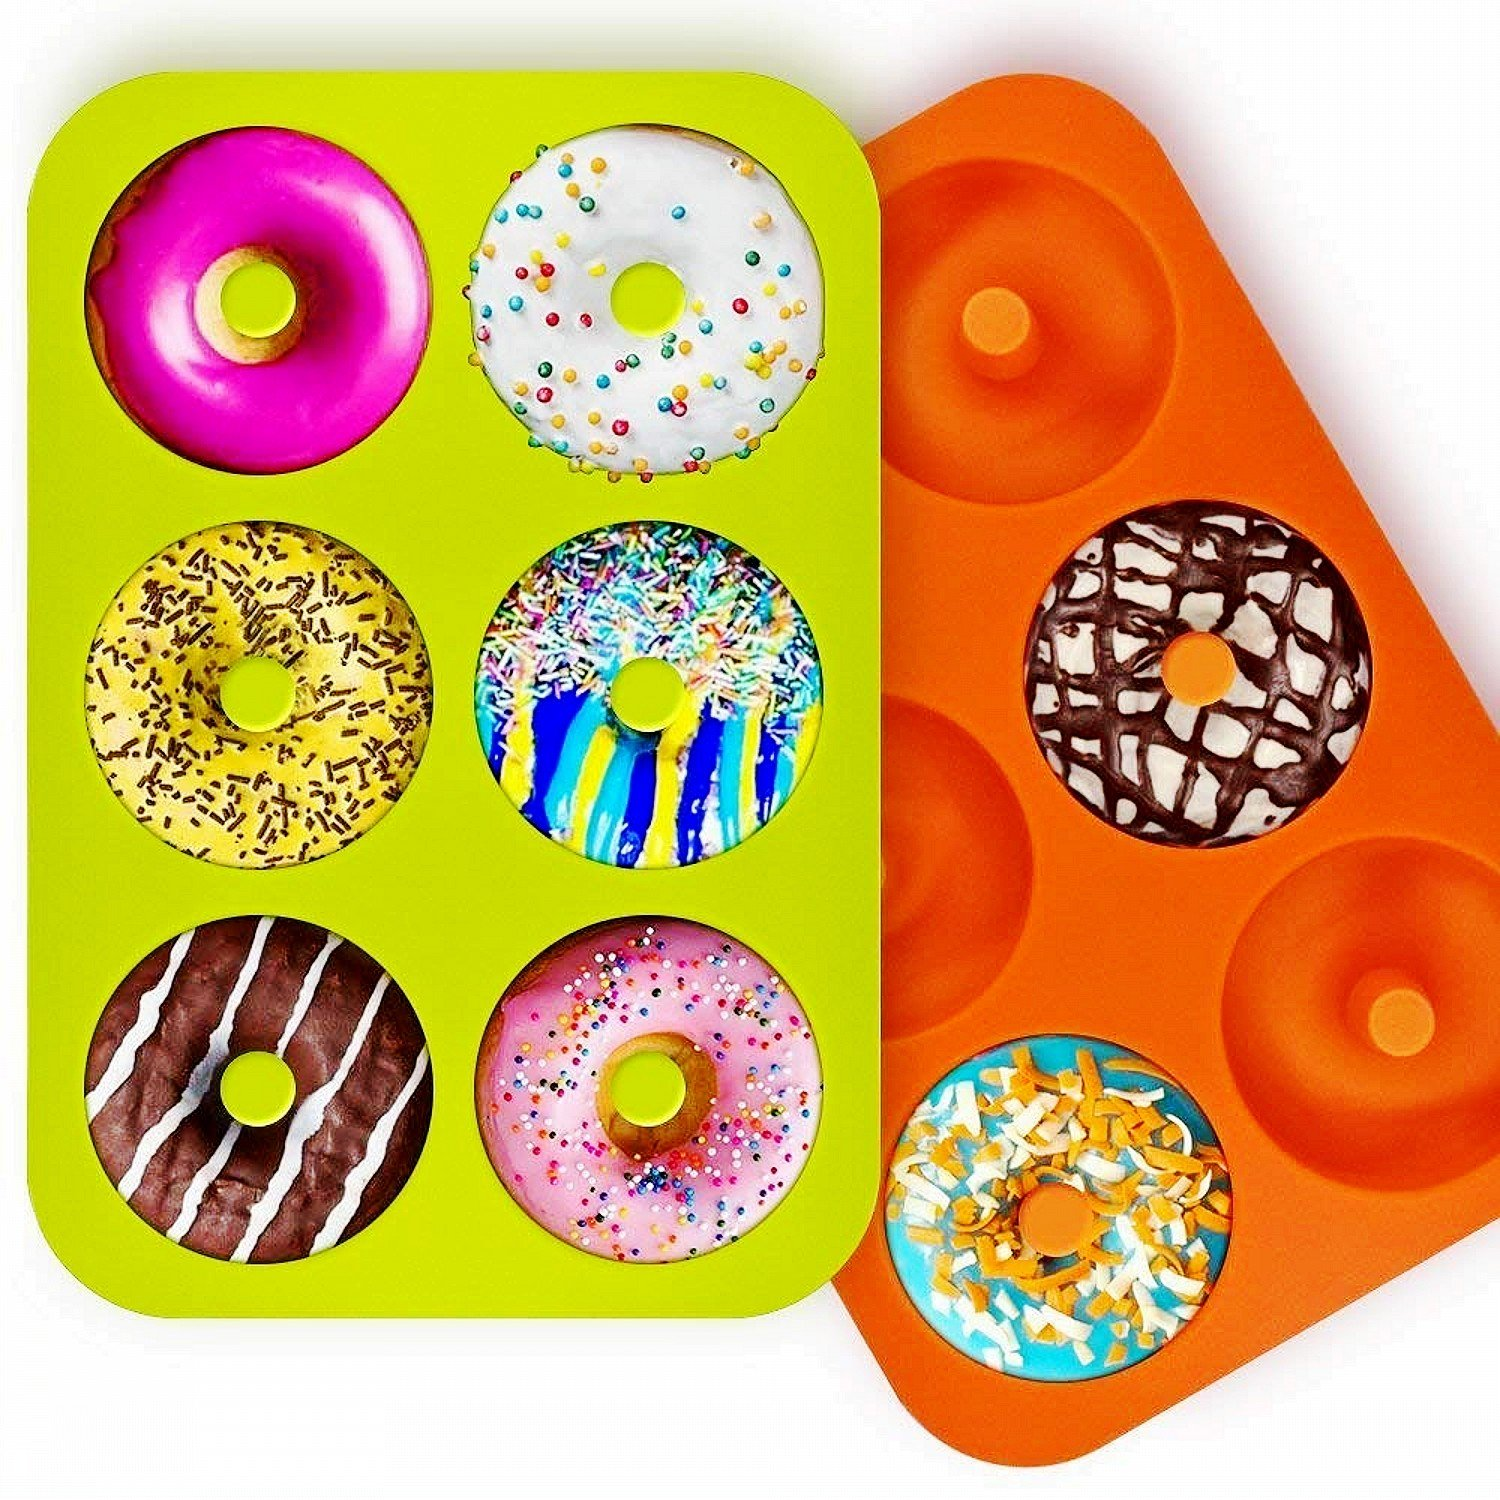 OKSANO 3 Pack Donut Molds, Silicon Cake Mold 6 Cavity Non-Stick Safe Baking Tray Maker Pan Heat Resistance for Cake Biscuit Bagels Muffins-Orange, Rose Red, Green by OKSANO (Image #4)